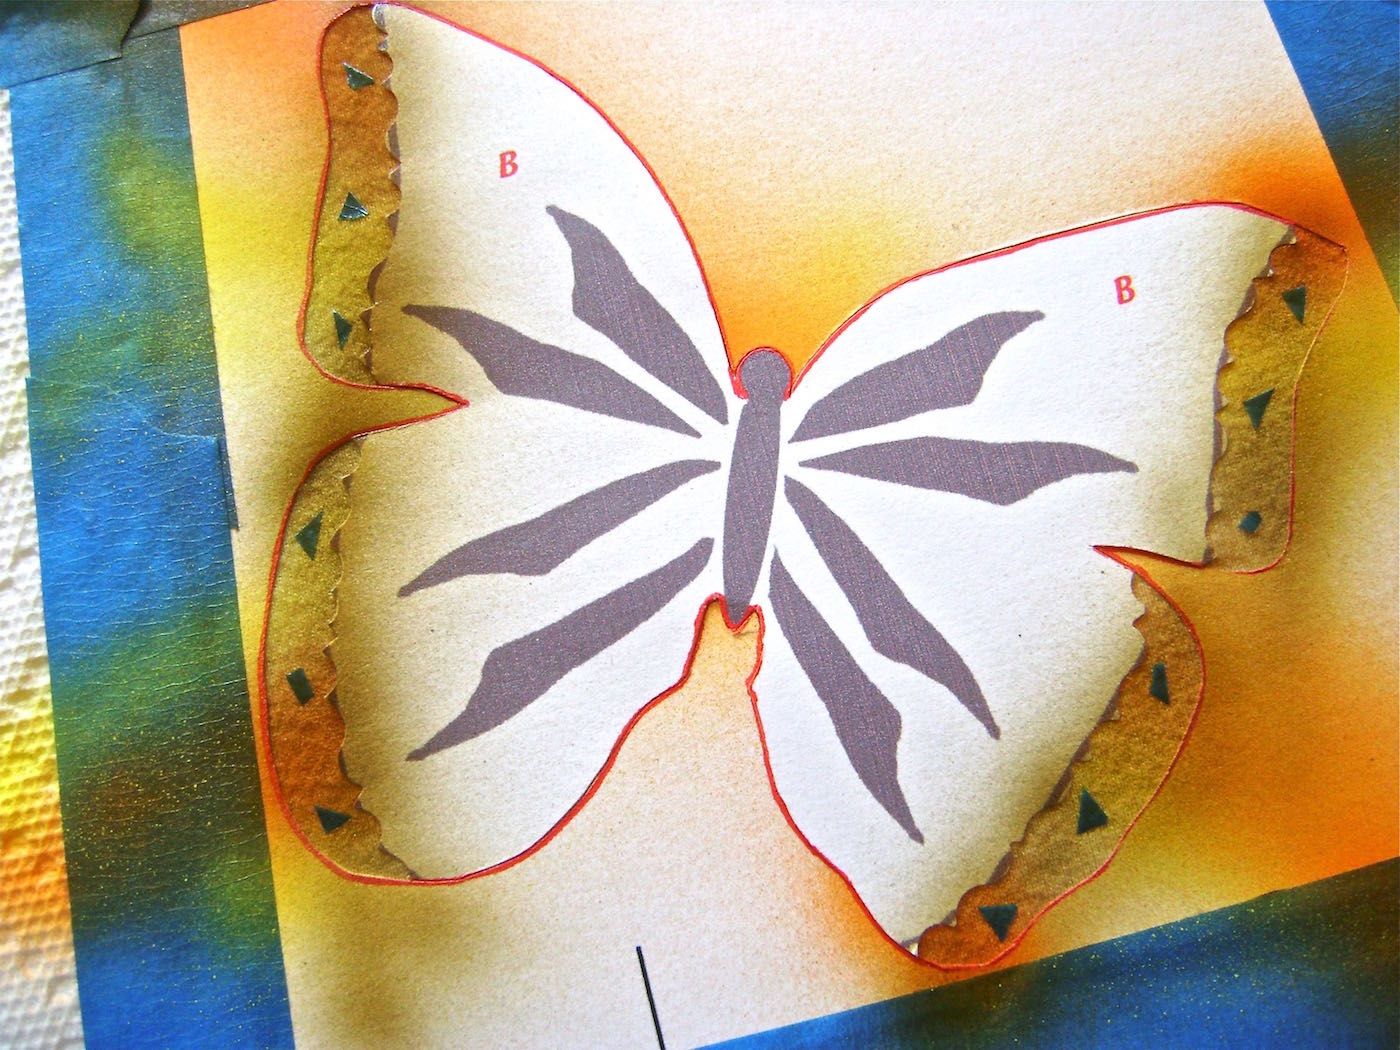 step 8 - With regular scissors, cut a few tiny odd shapes from painter's tape and adhere them to the exposed wing borders. Paint the borders with a light spray of Bronze Have More Fun paint.